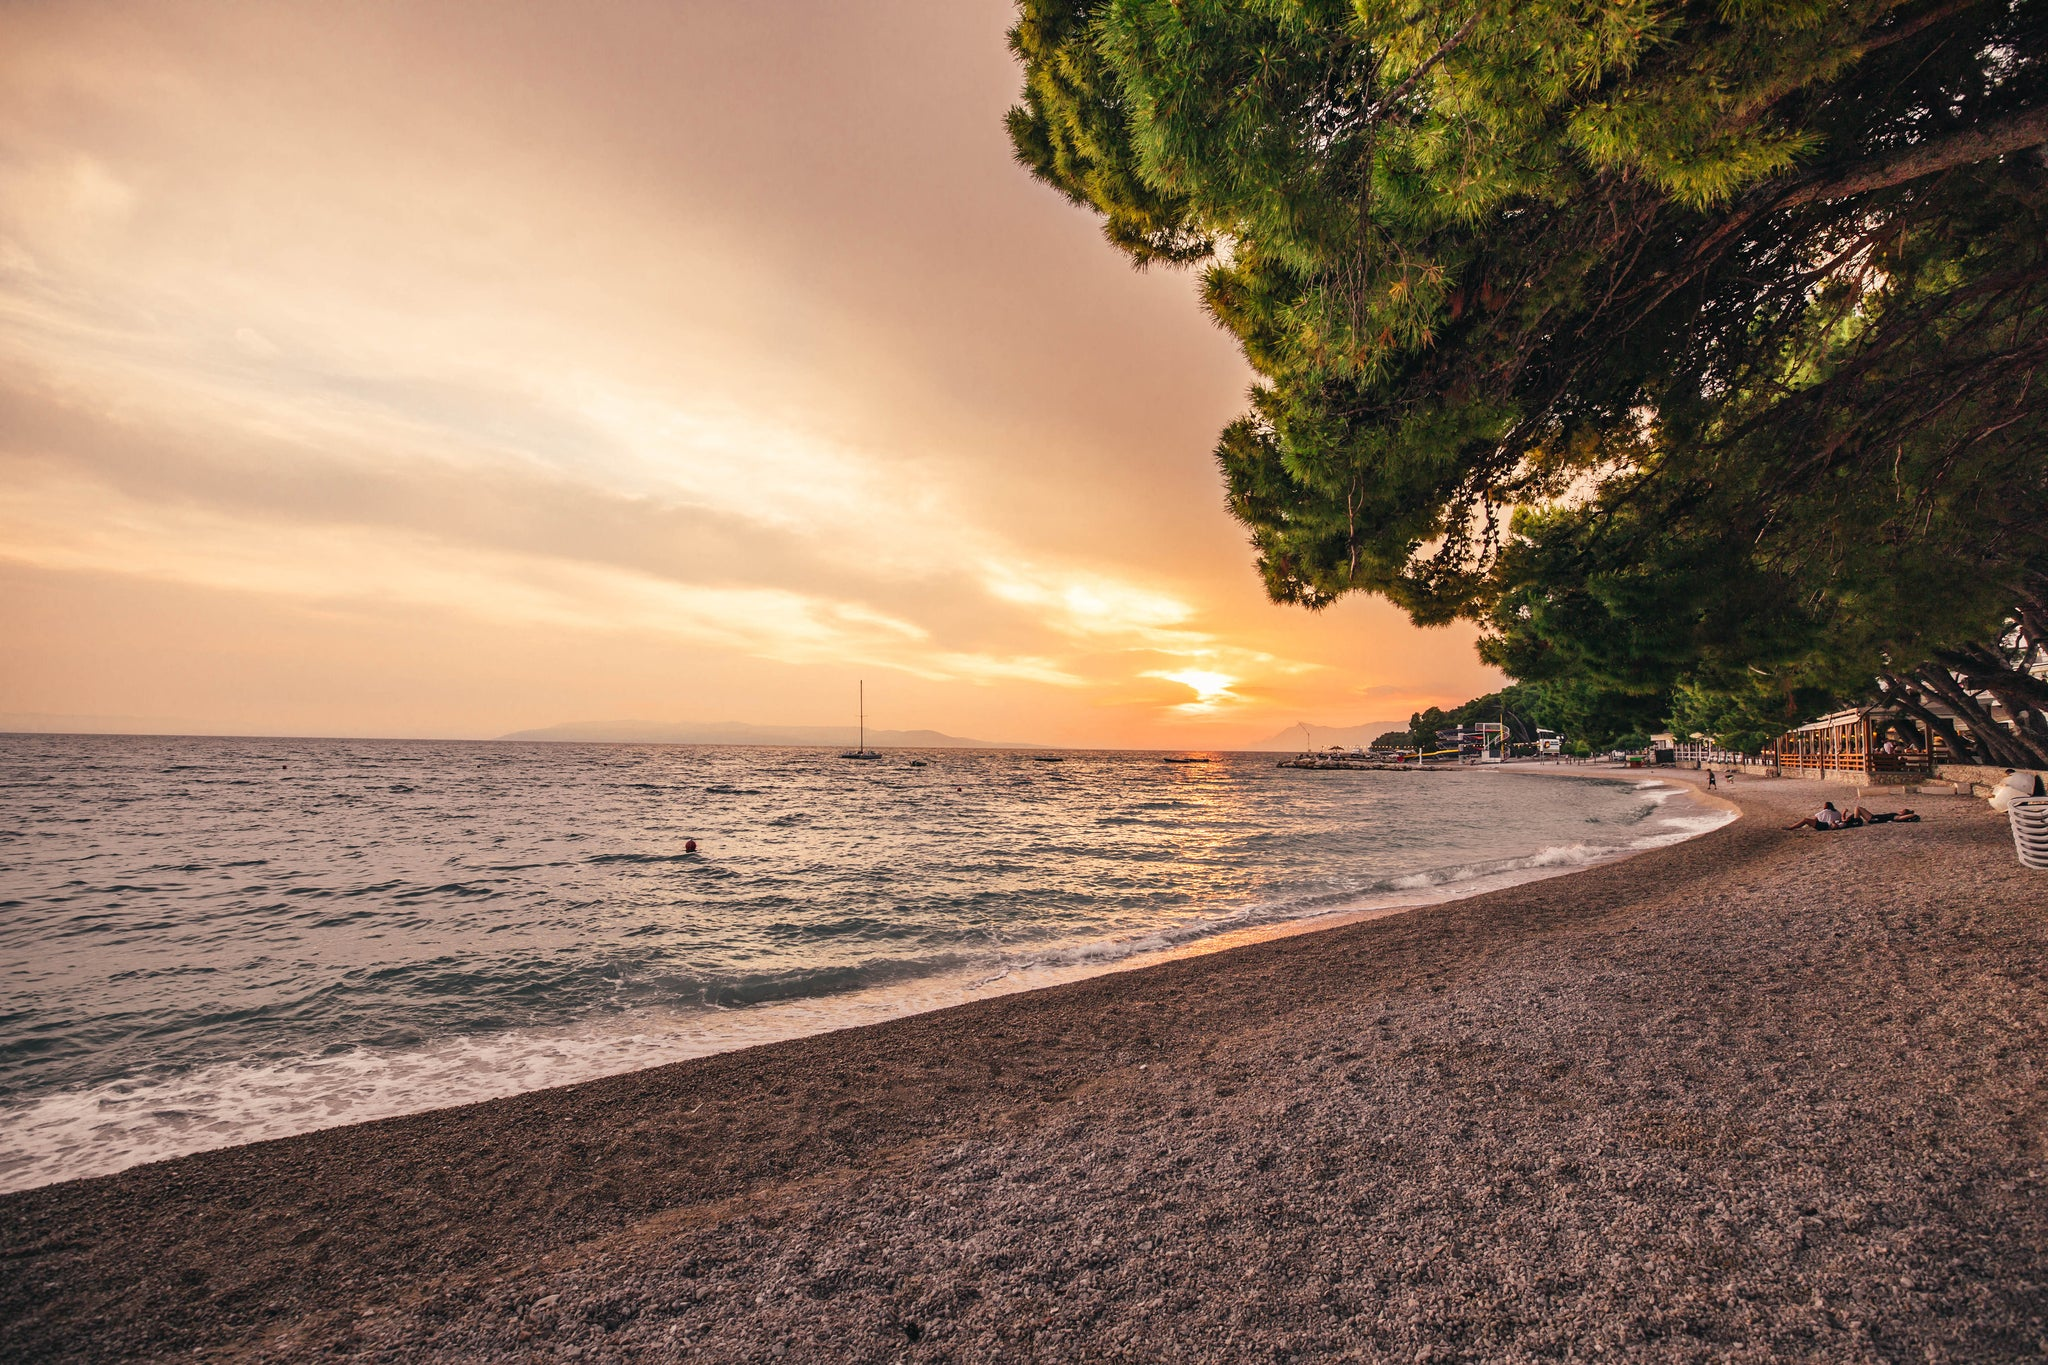 Makarska, Croatia sunset at beach